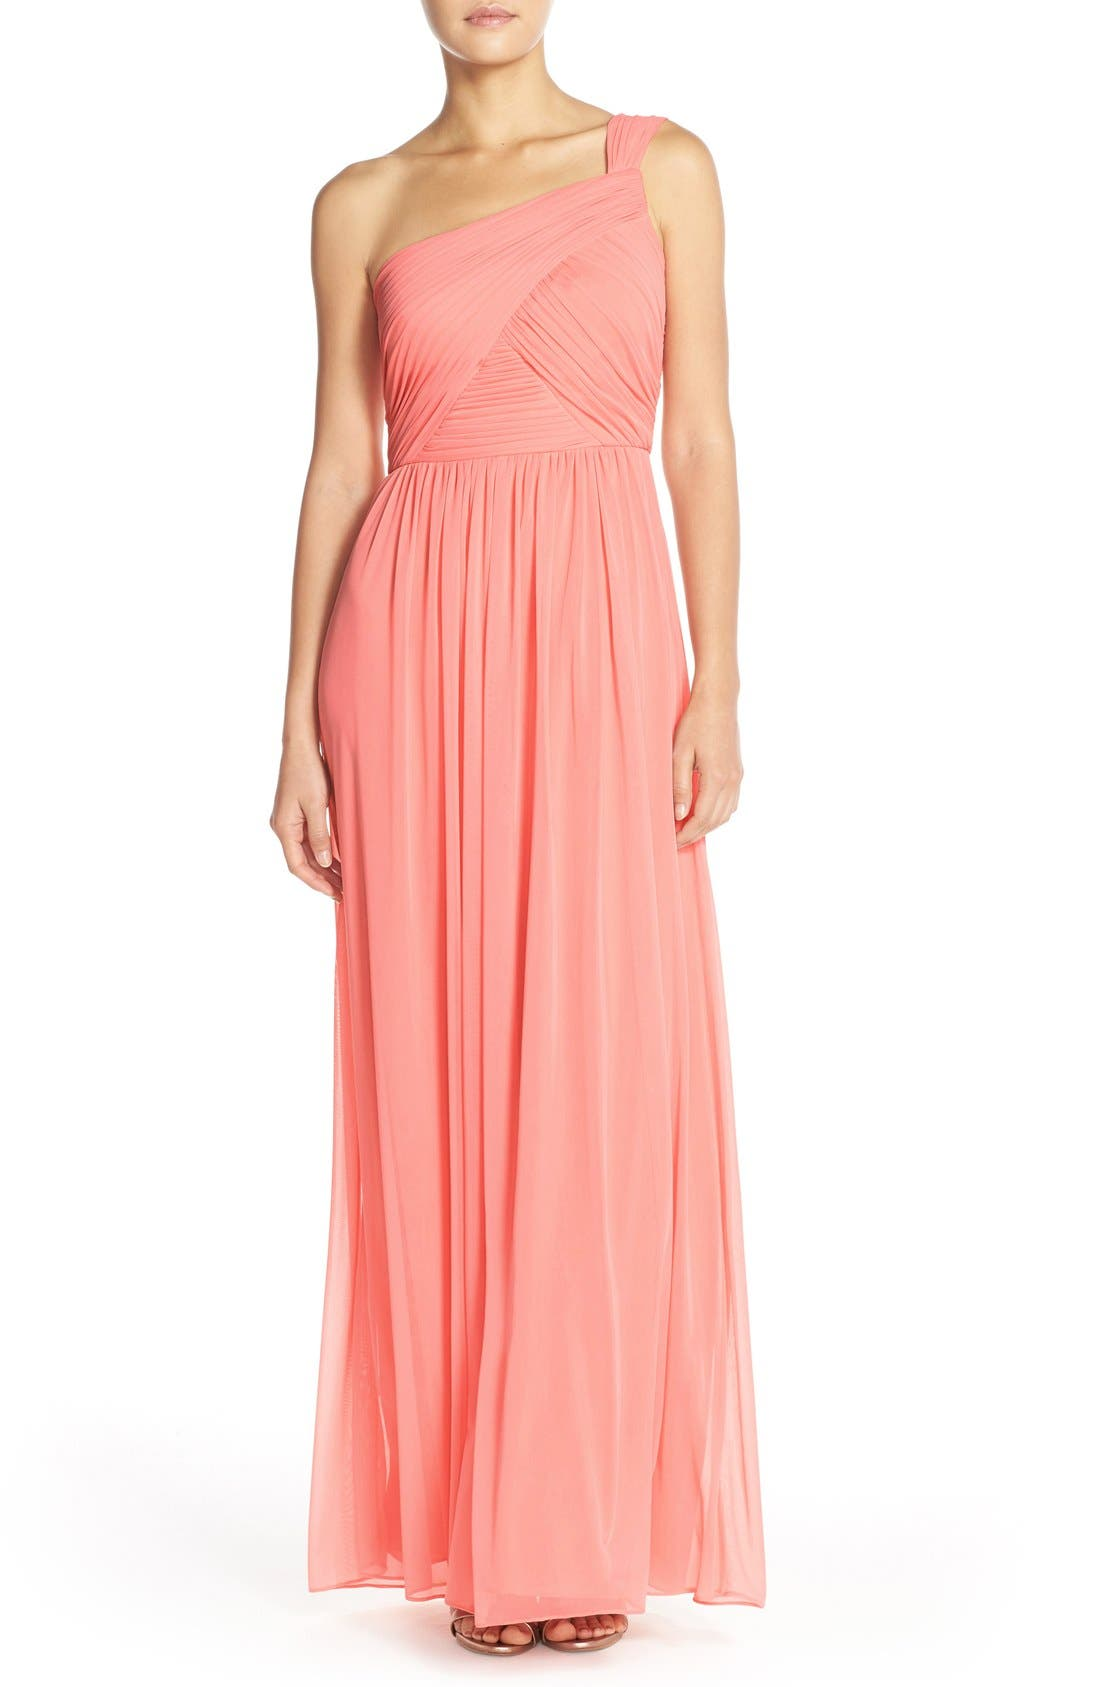 Alternate Image 1 Selected - Alfred Sung One-Shoulder Shirred Chiffon Gown